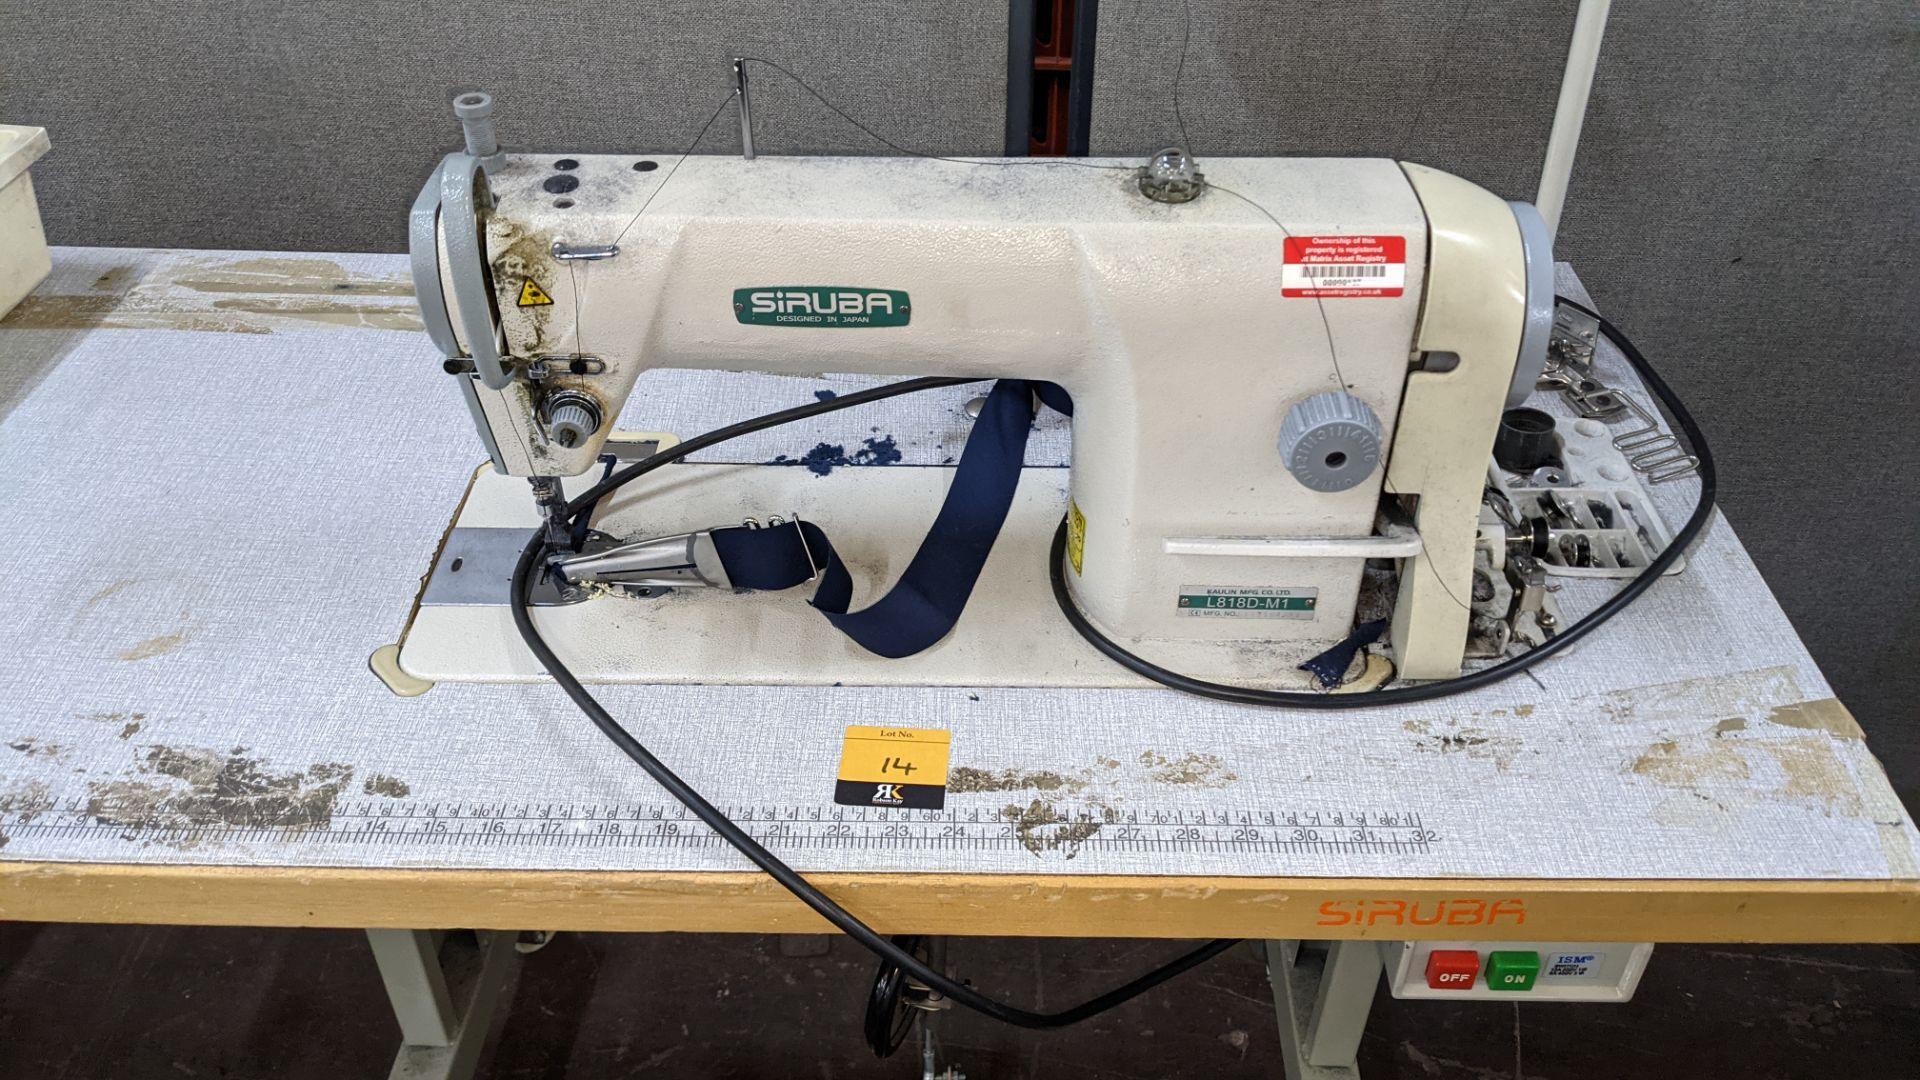 Siruba sewing machine, model L818D-M1, with edge band guide - Image 5 of 13